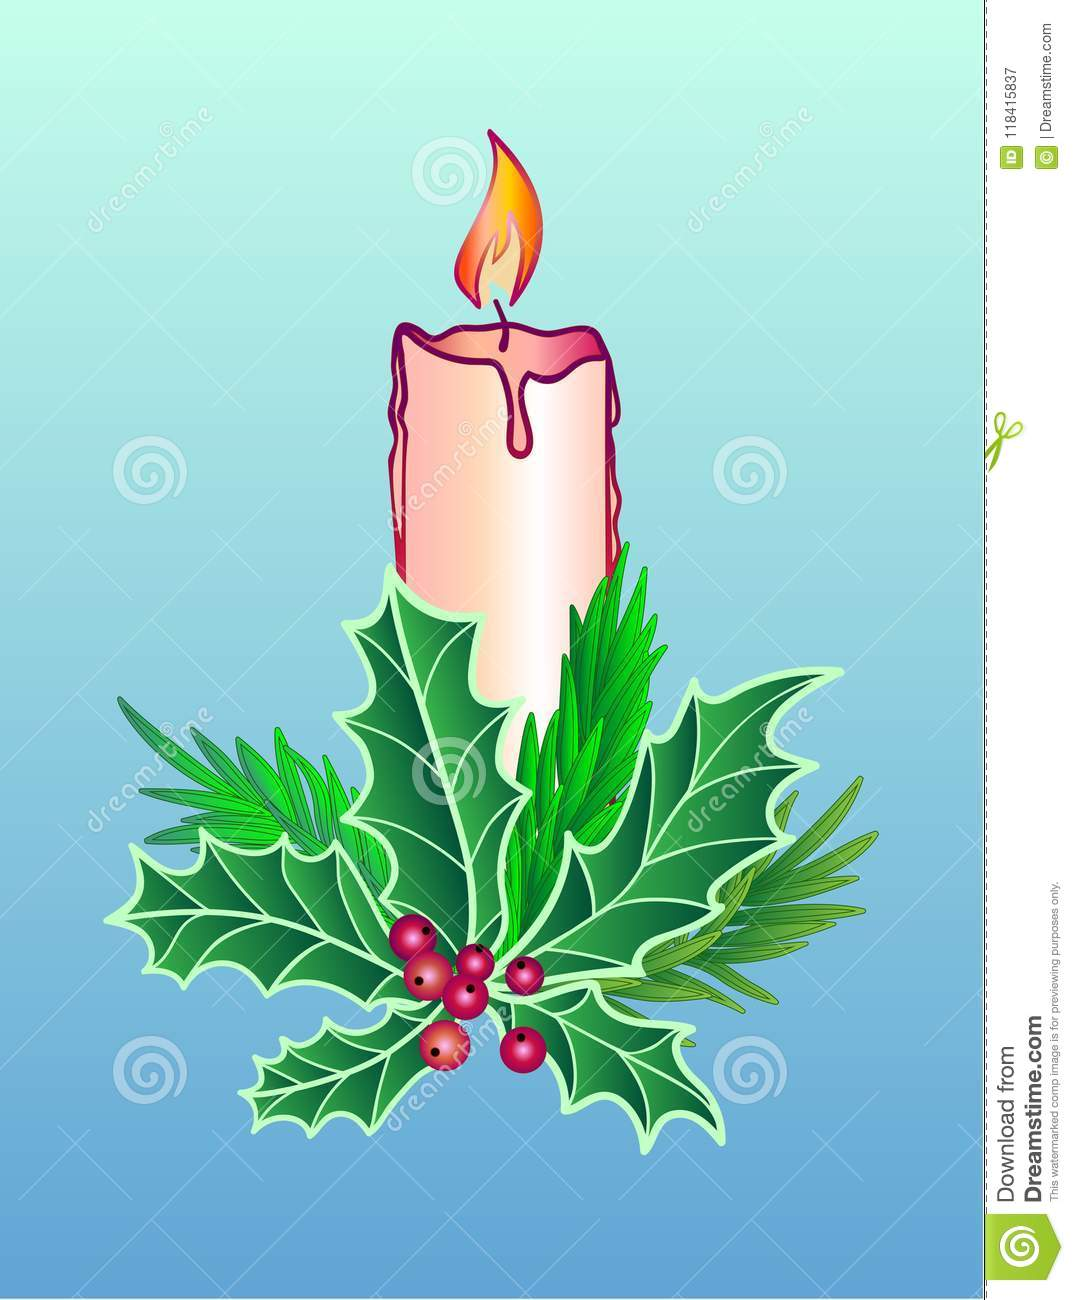 Christmas and New Year decoration. Candle decorated with holly leaves with berries and branches of rosemary on a blue gradient bac